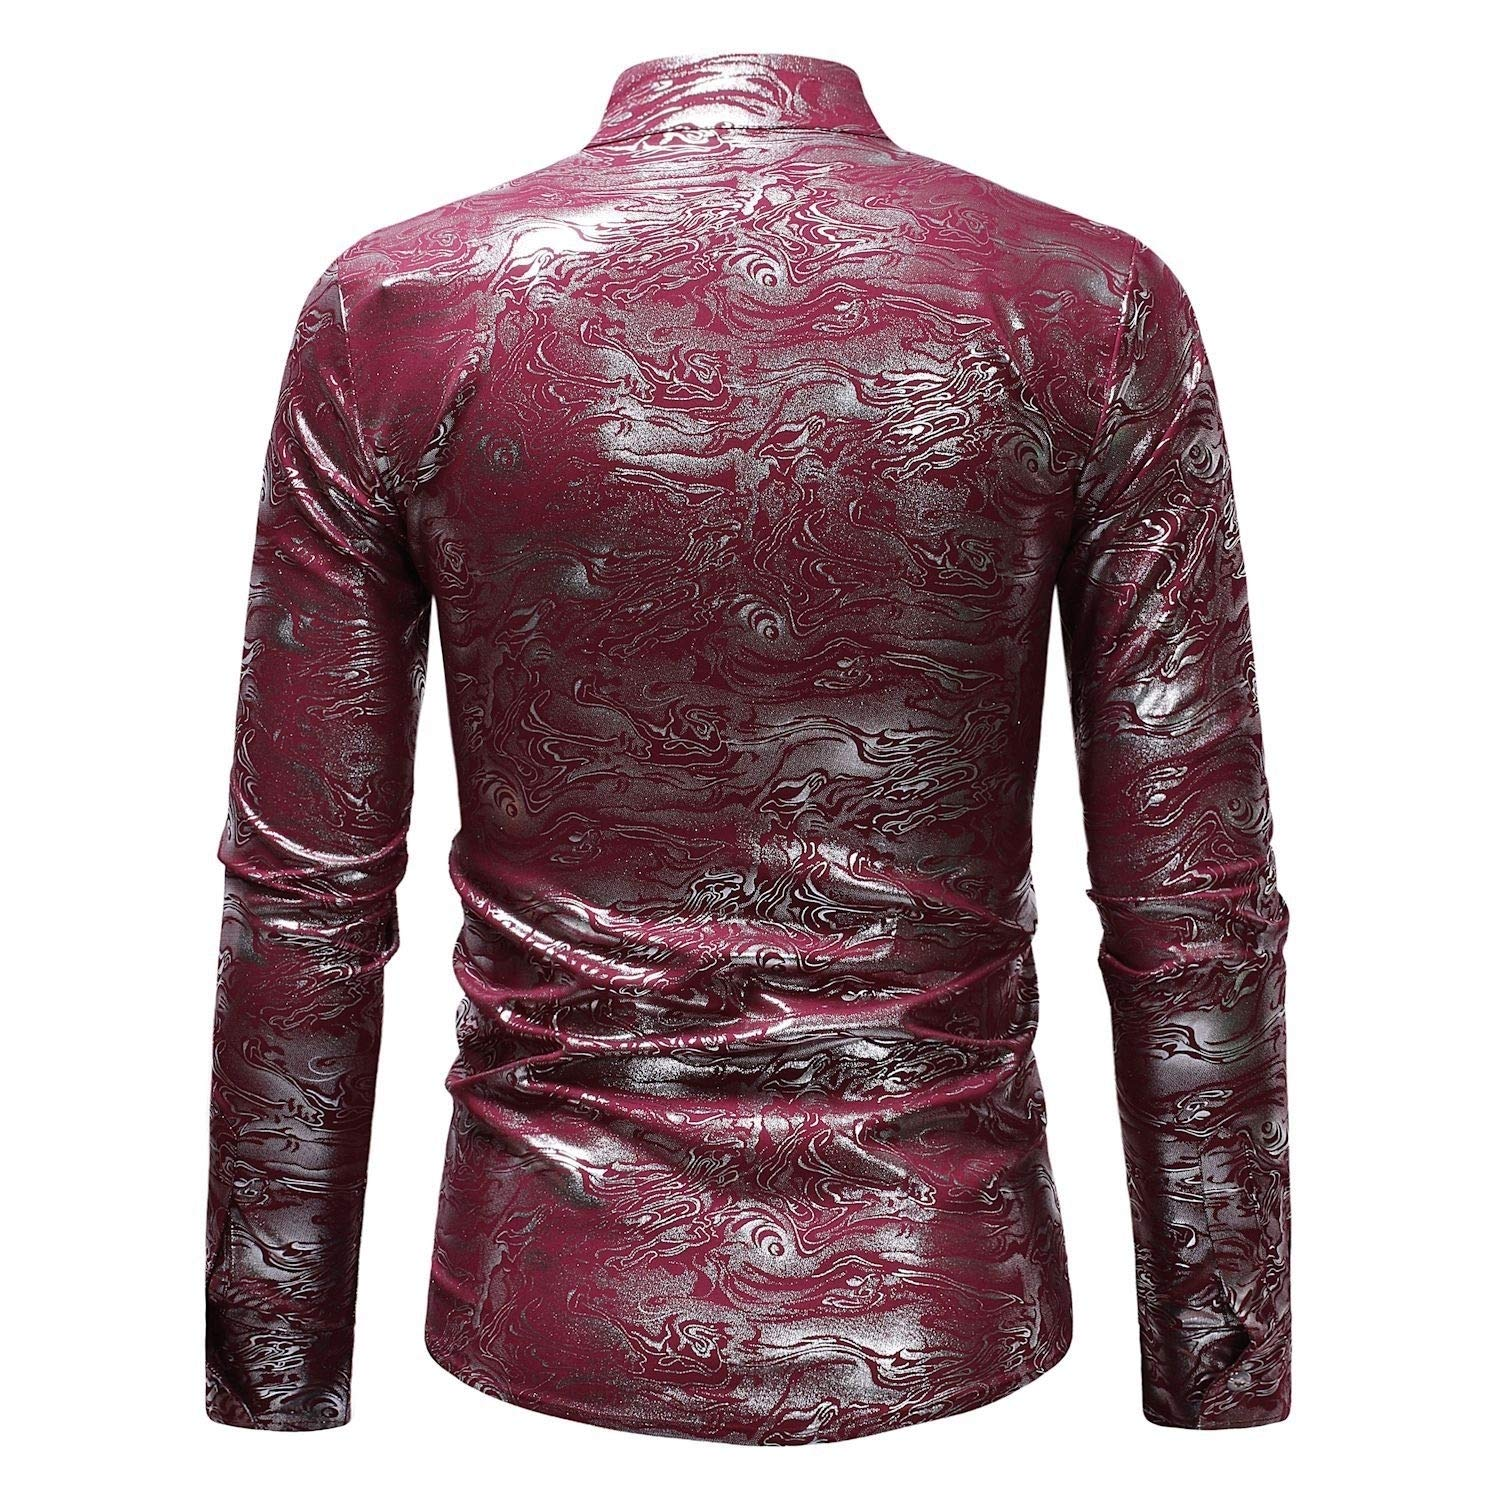 YUNY Men Button Stand Up Collar Satin Dress Long-Sleeve Western Shirt Wine Red S